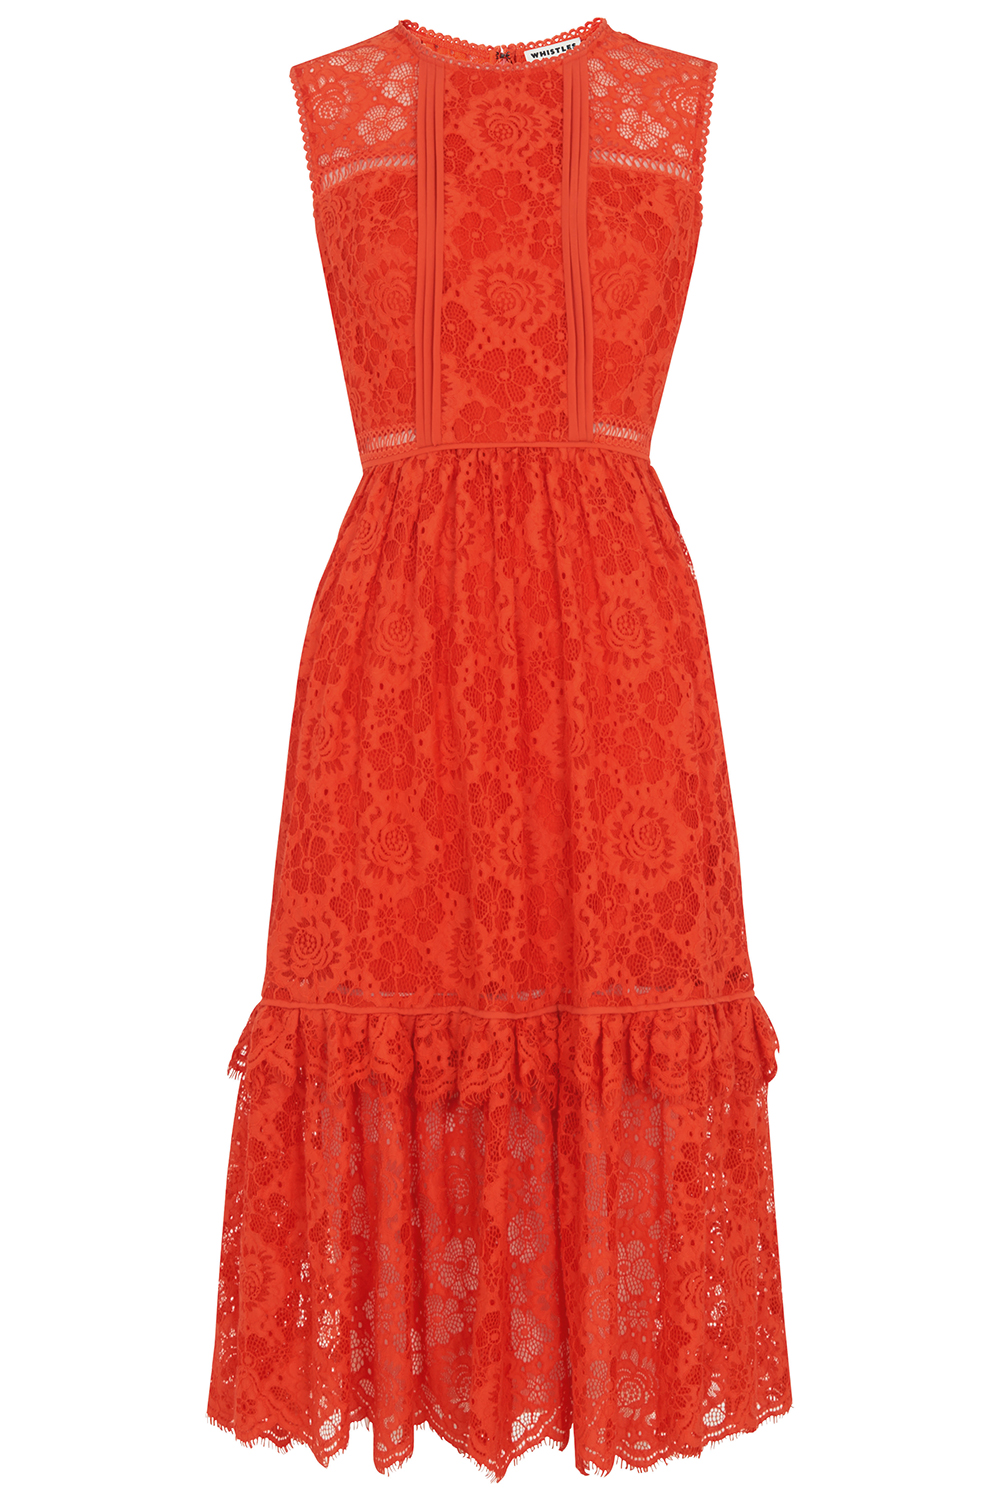 Best evening dresses from cocktail to black tie shop the edit ombrellifo Choice Image